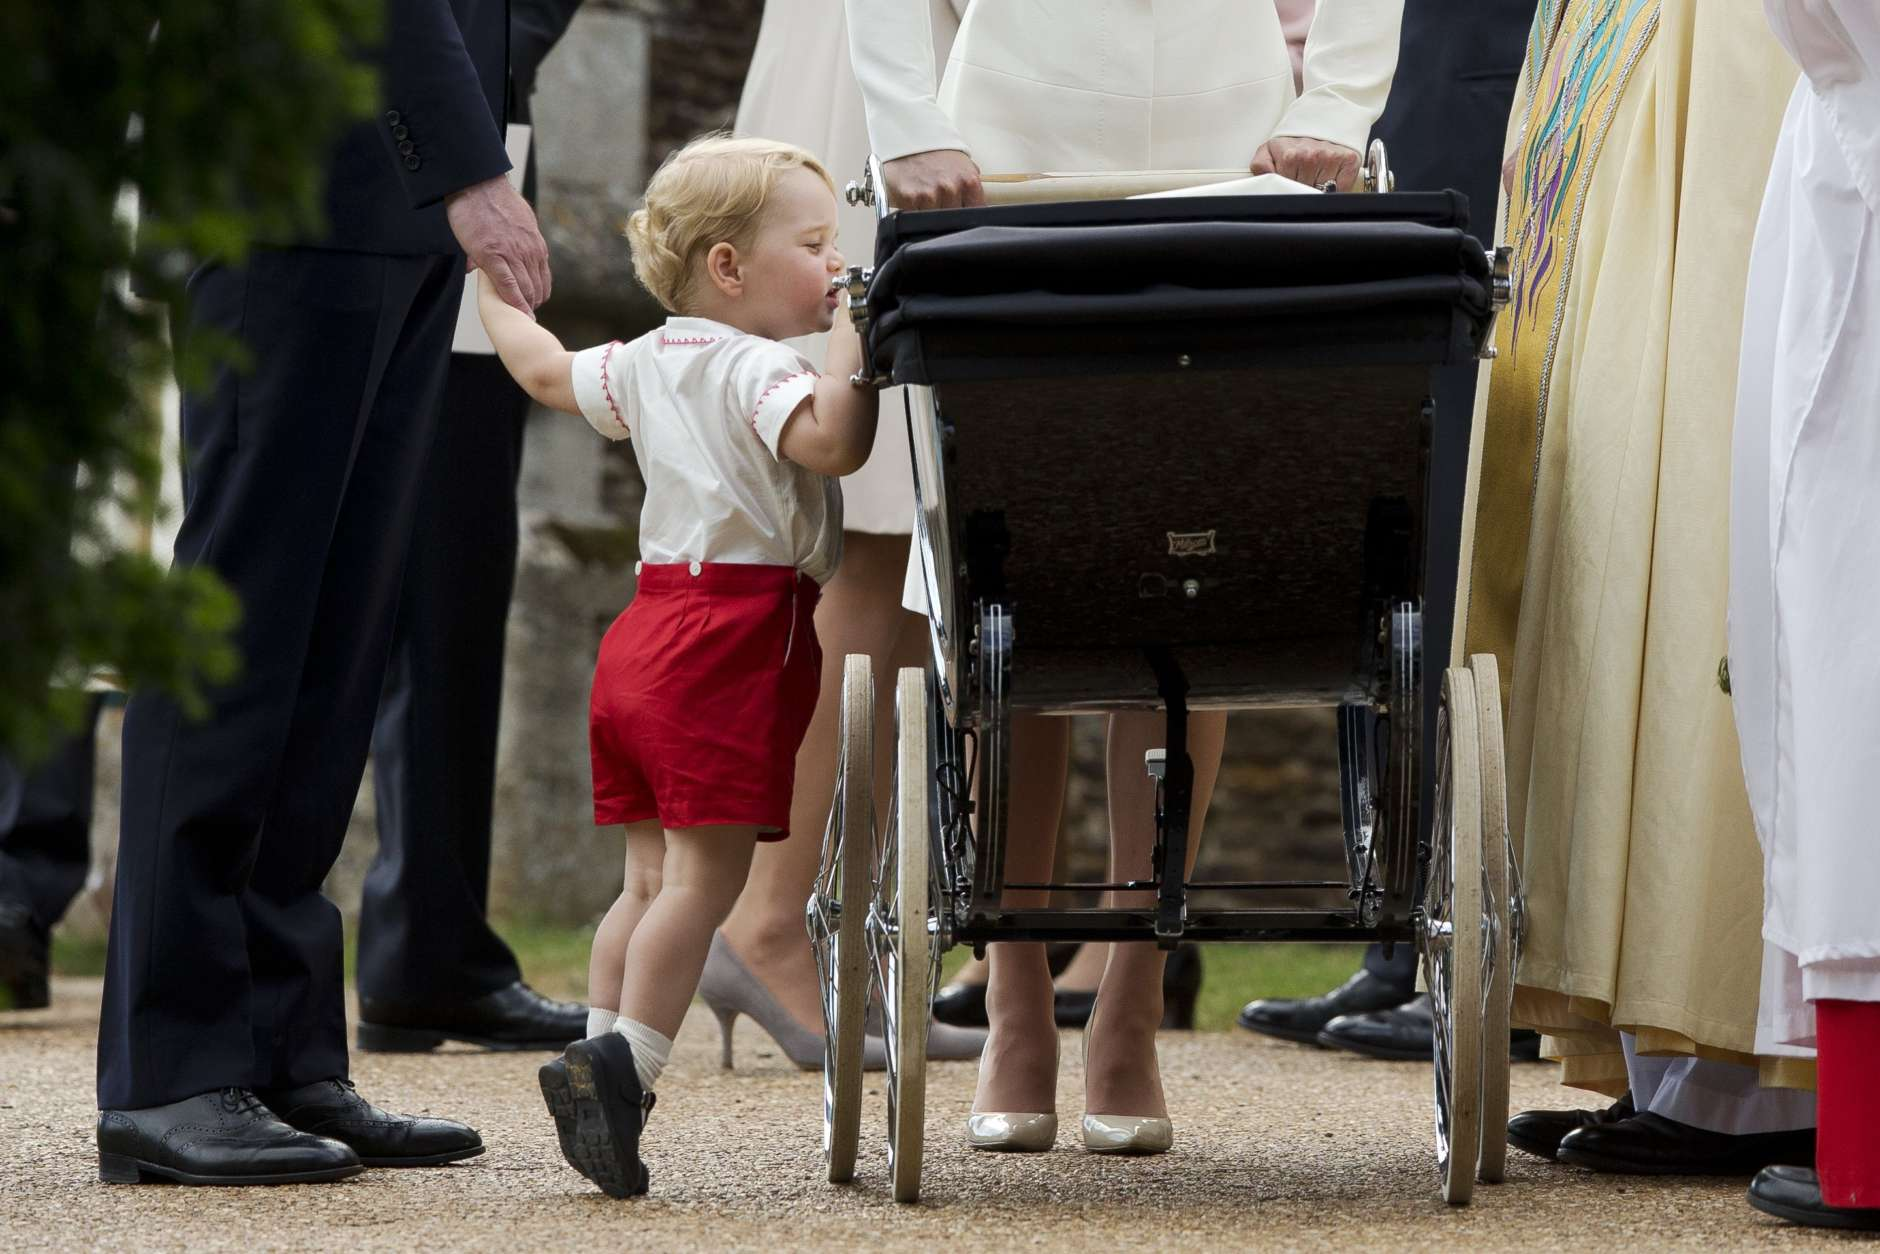 Britain's Prince George gets up on tip-toes to peek into the pram of his sister Princess Charlotte flanked by his parents Prince William and Kate the Duchess of Cambridge as they leave after Charlotte's Christening at St. Mary Magdalene Church in Sandringham, England, Sunday, July 5, 2015.  (AP Photo/Matt Dunham, Pool, File)